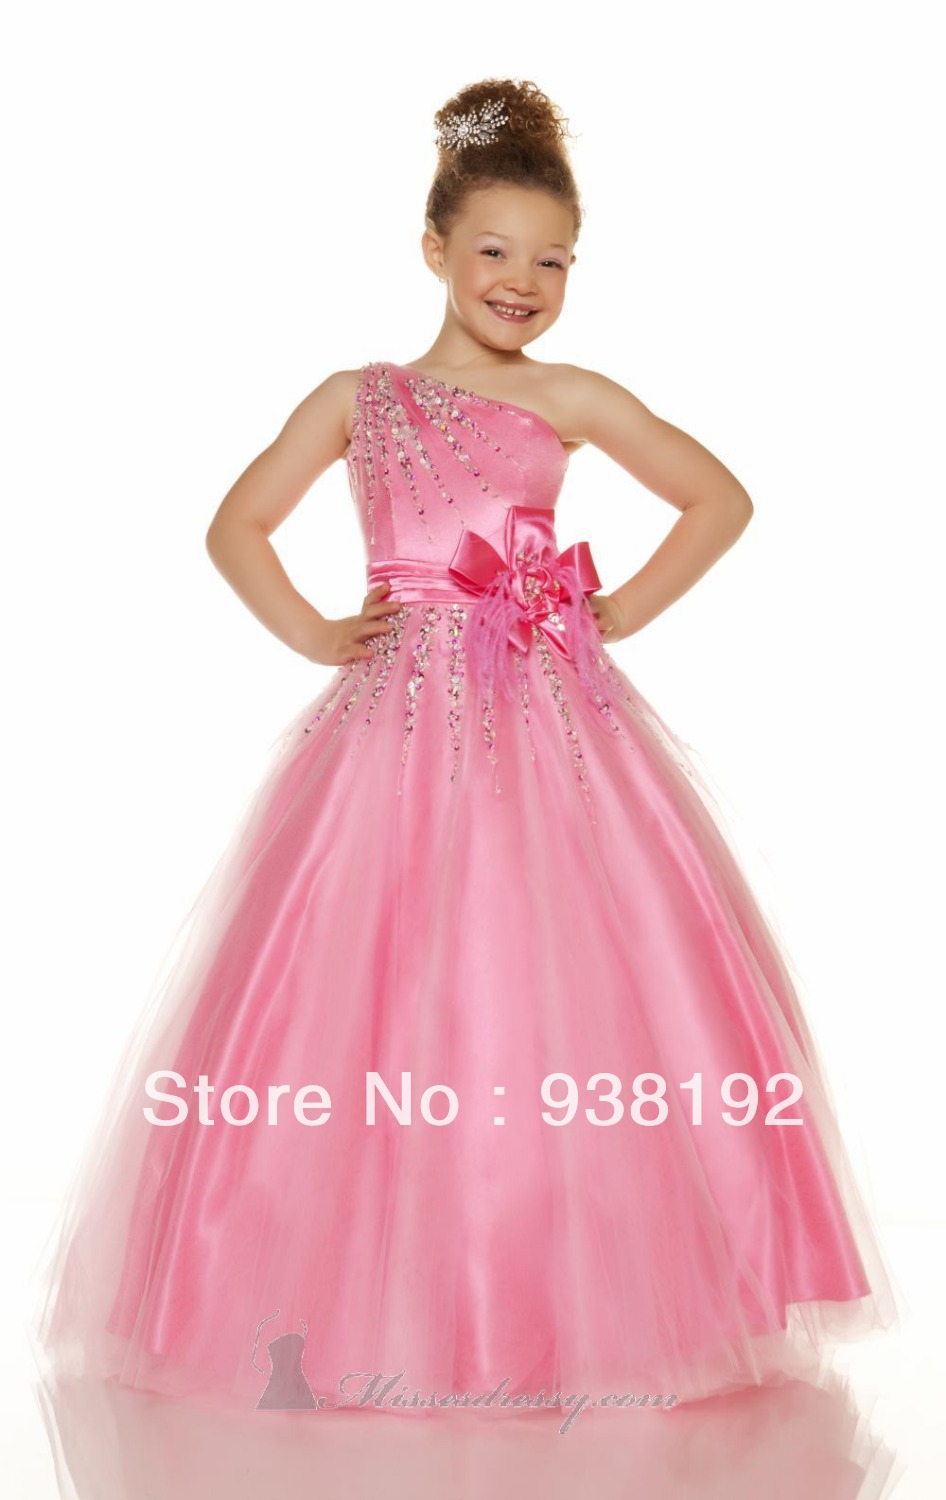 a9cc0880b Flower Girl Dresses Macys Party Dress Girls Pageant Formal Weddings  Scalloped One Shoulder Sleeveless Crystal 2015 Free Shipping